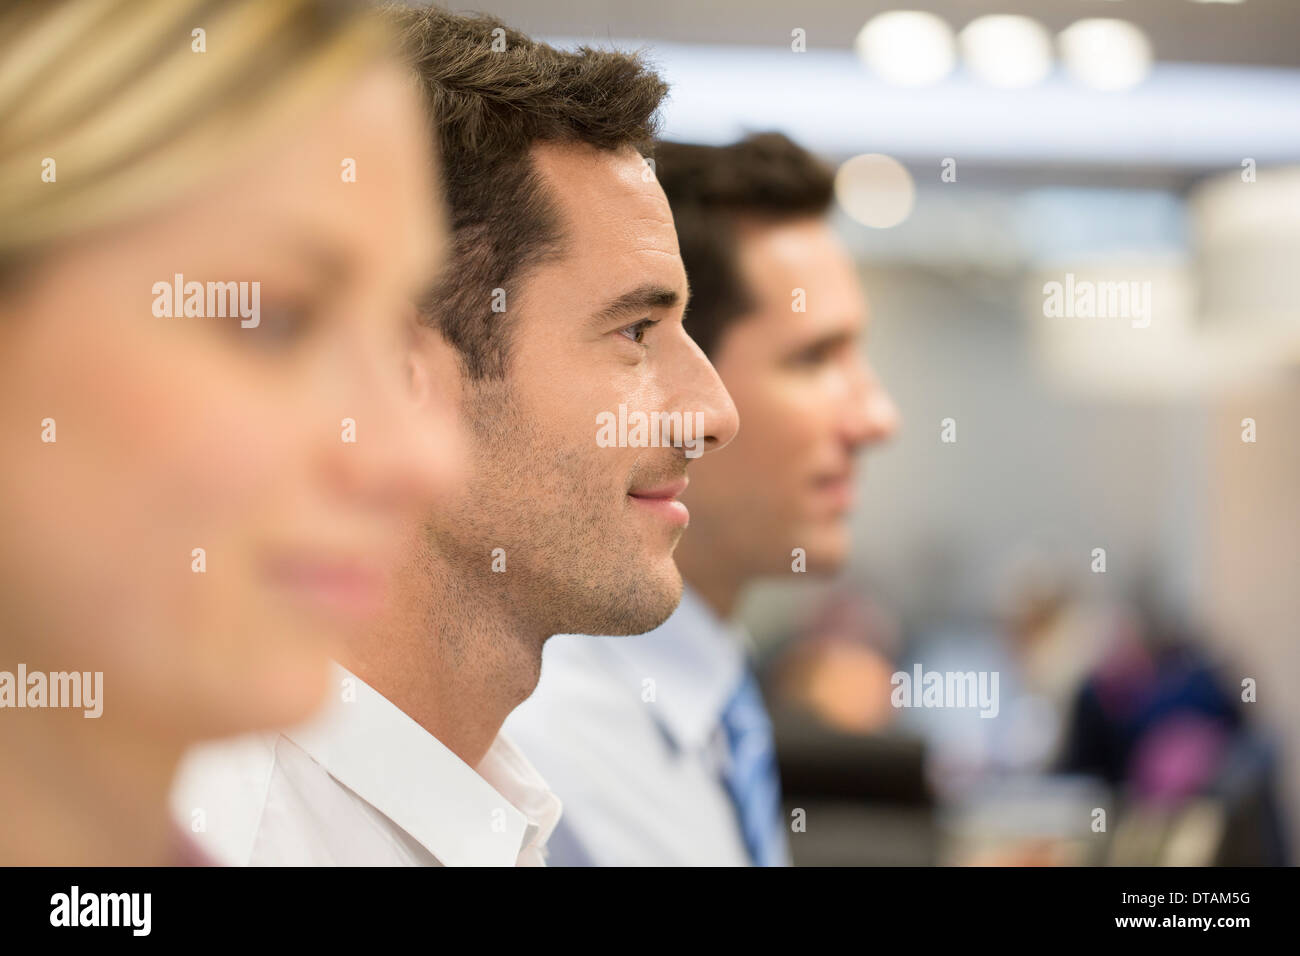 Groupe hommes femme profil office line Photo Stock